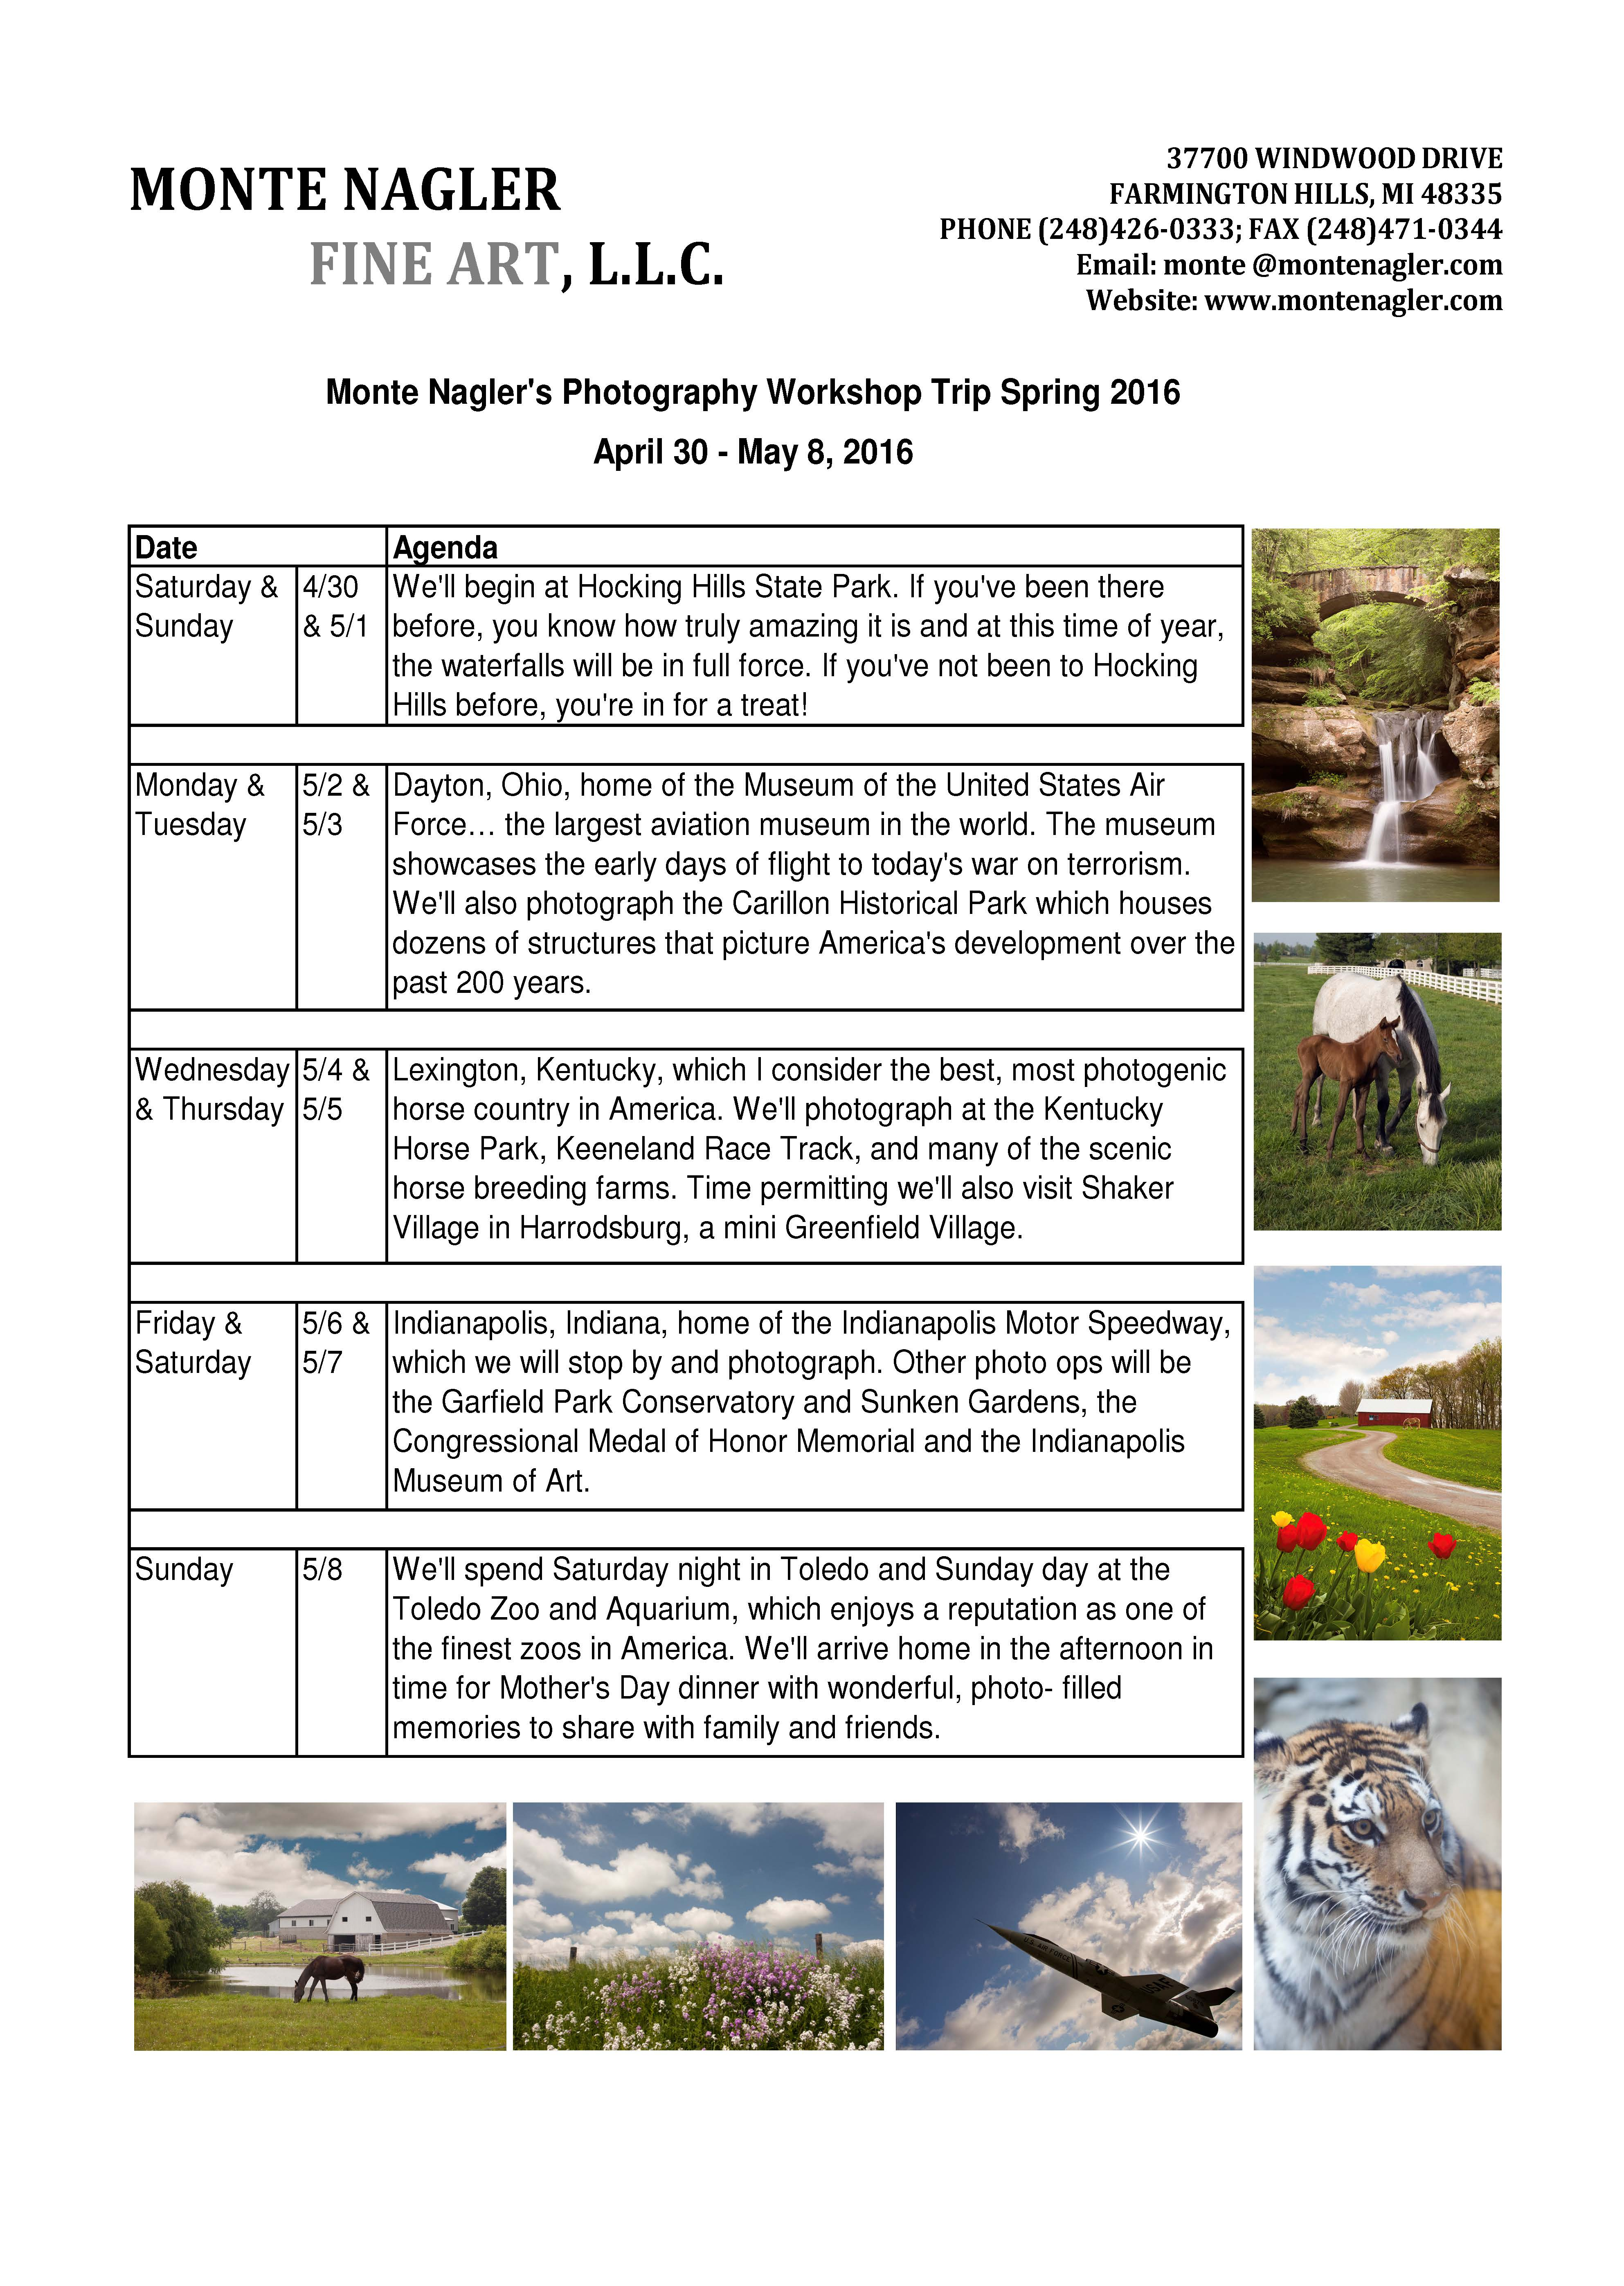 Itinerary for Photography Trip Spring 2016